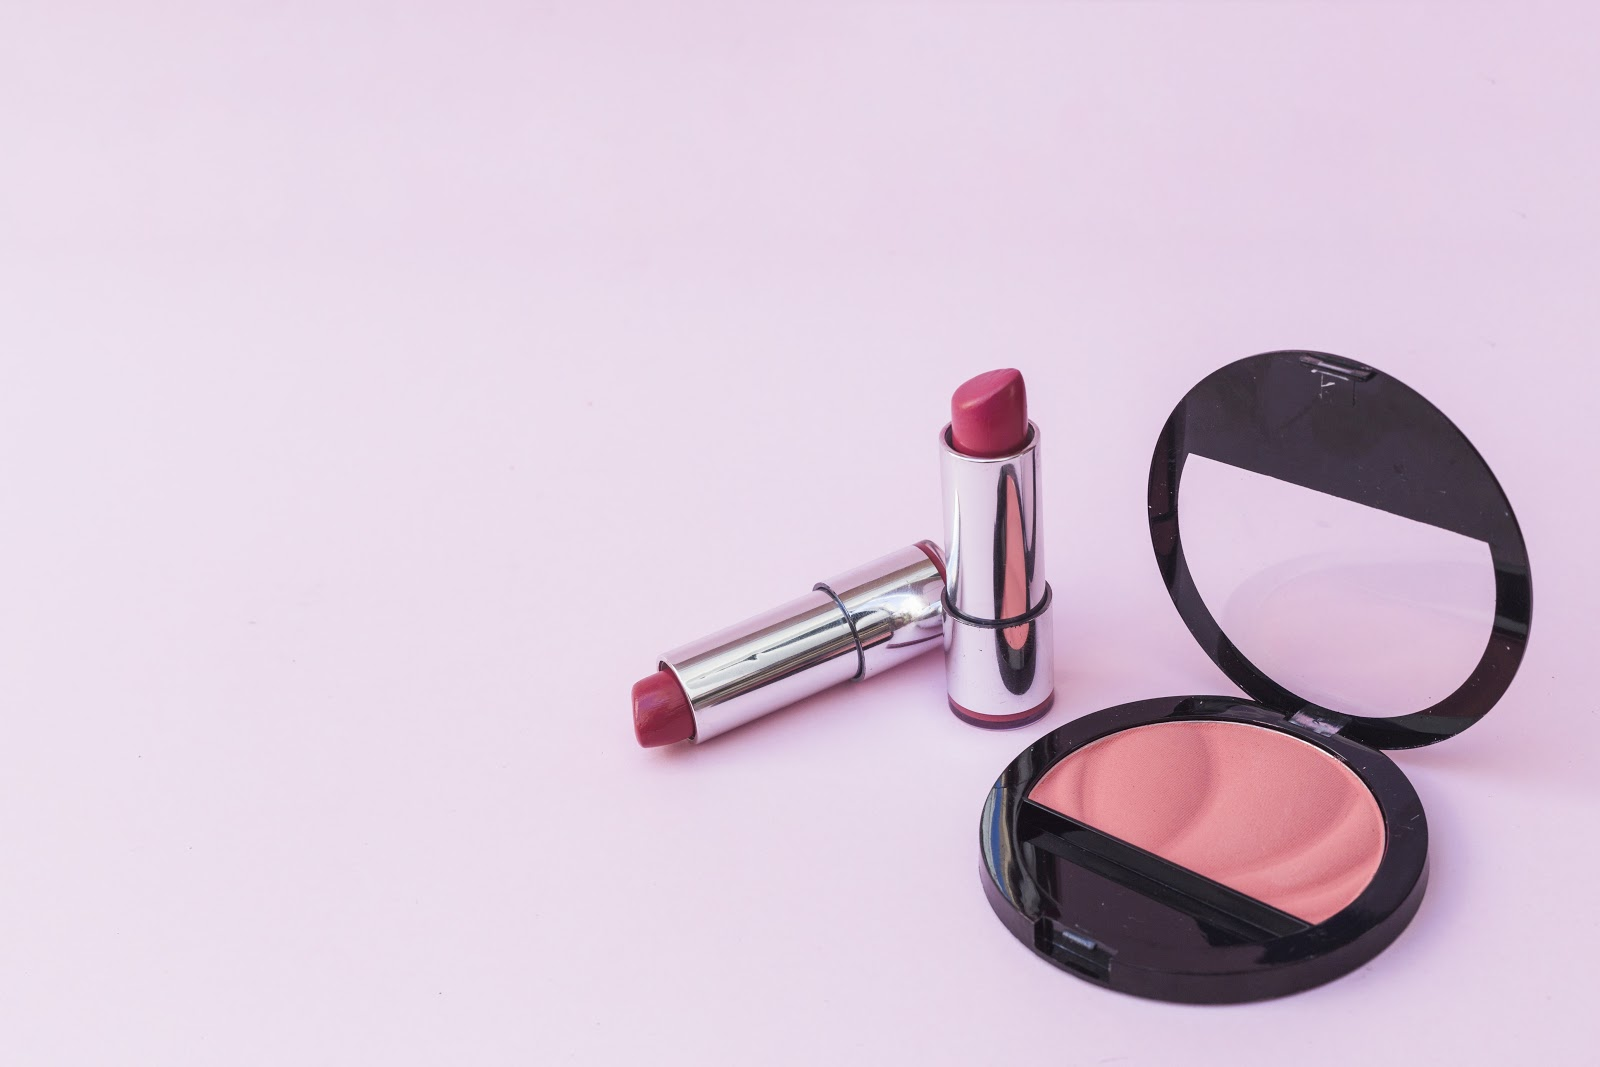 Make-up products for Indian skin